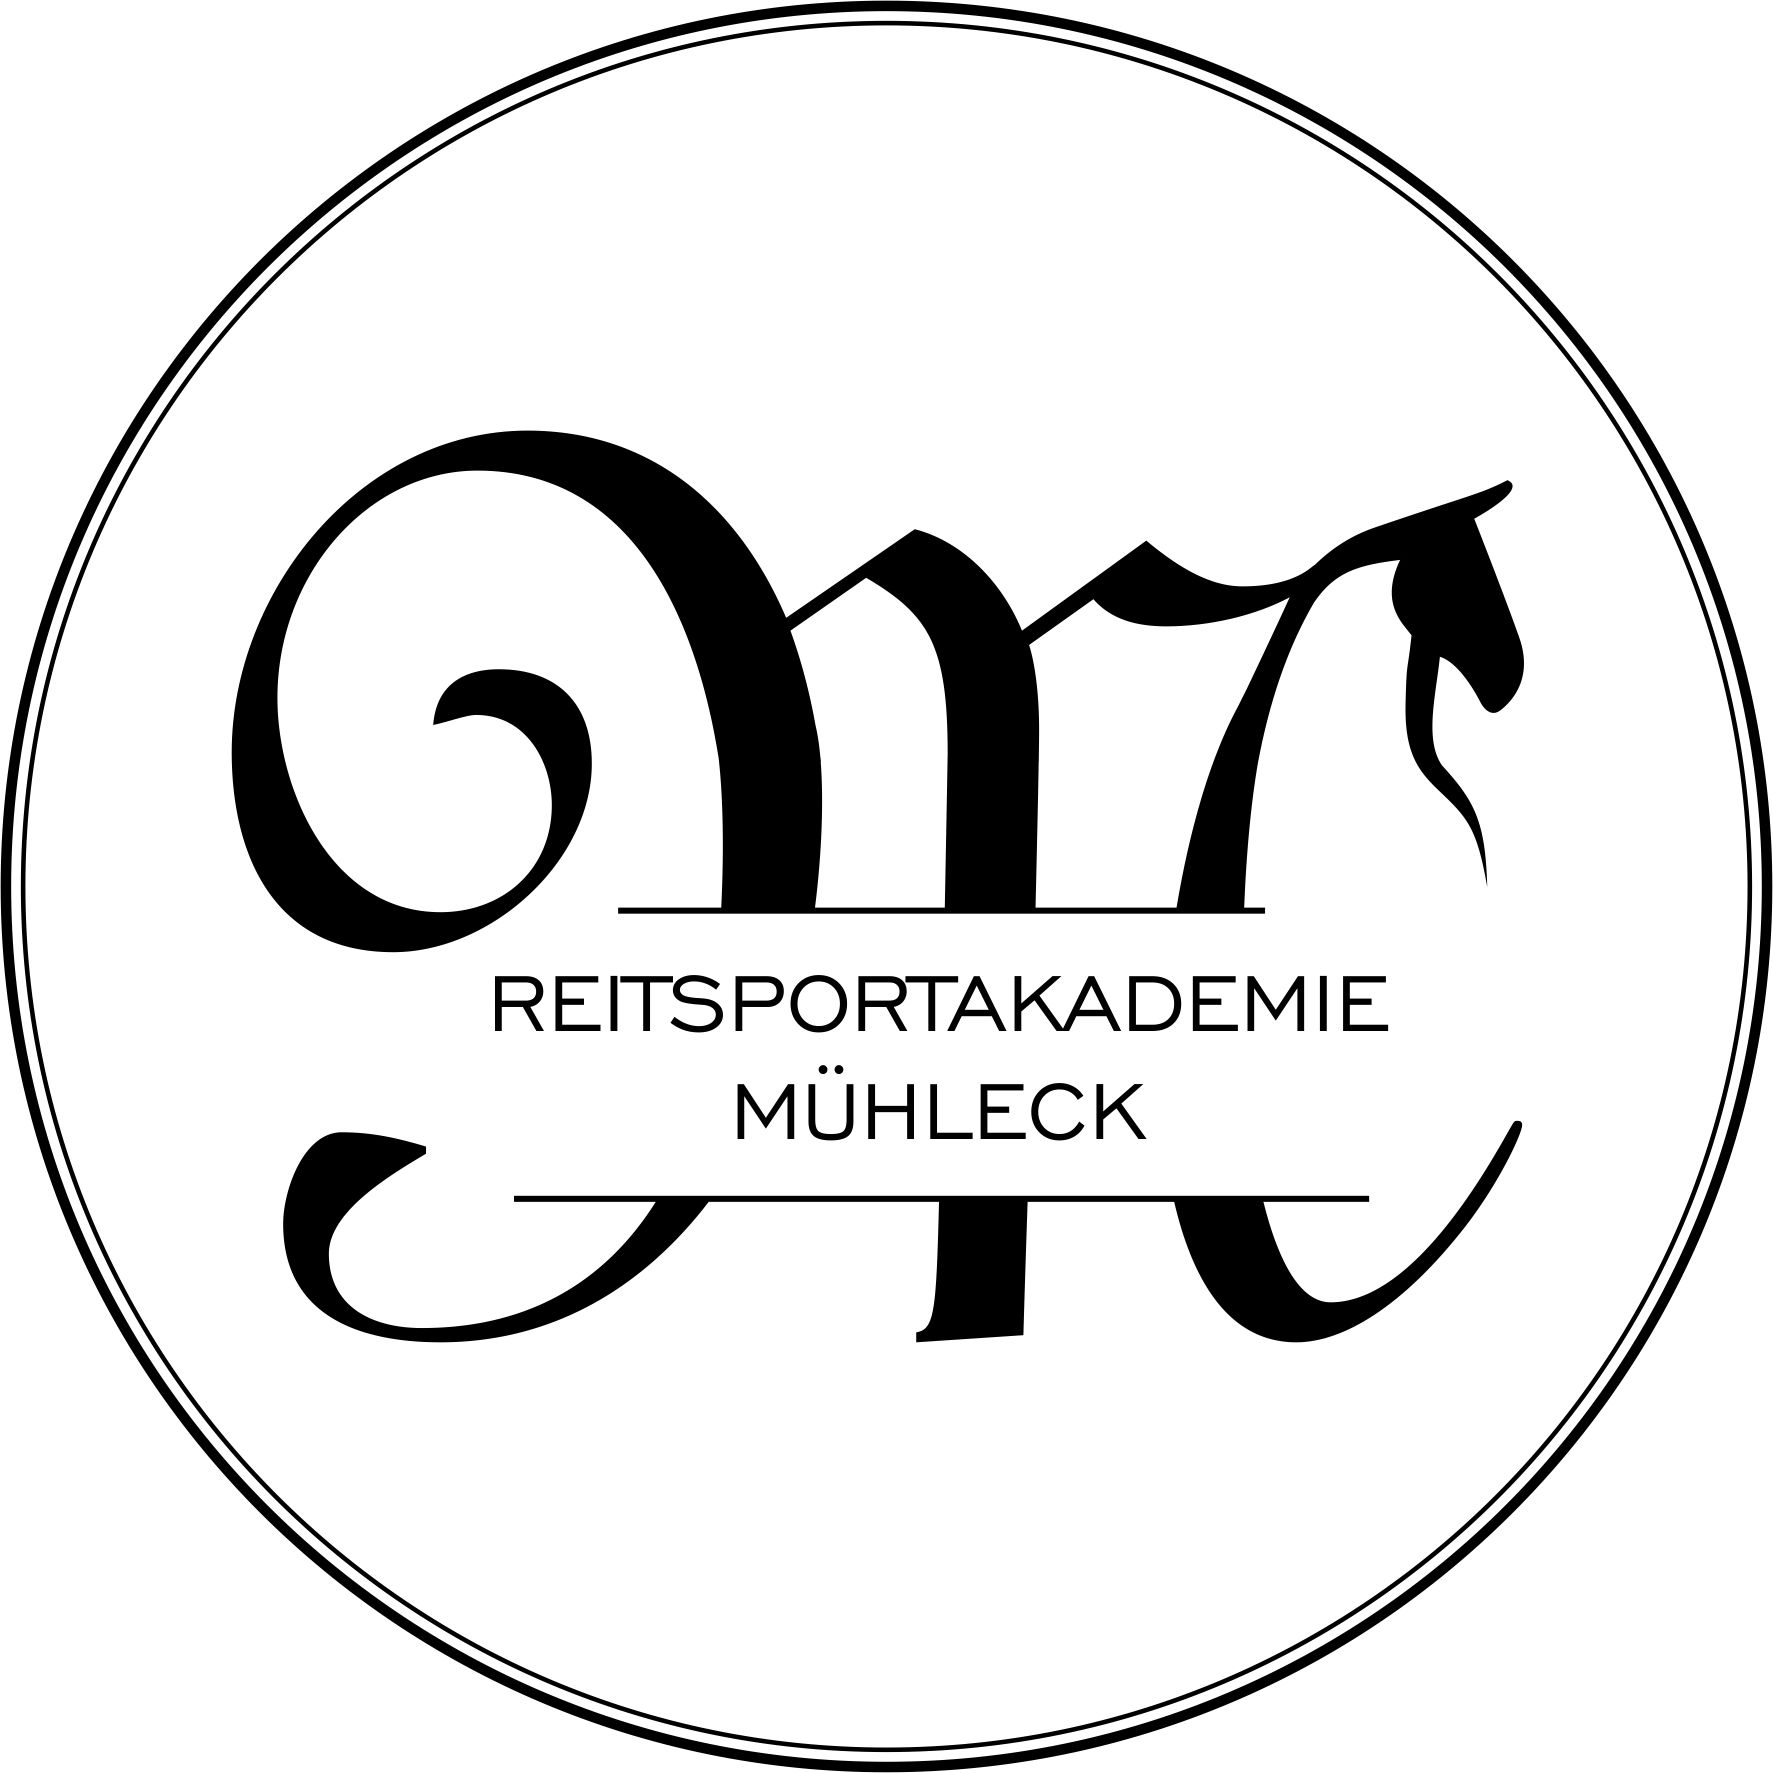 https://futura-solution.at/wp-content/uploads/2019/12/Reitsportakademie-Mühleck_VFinish.jpg